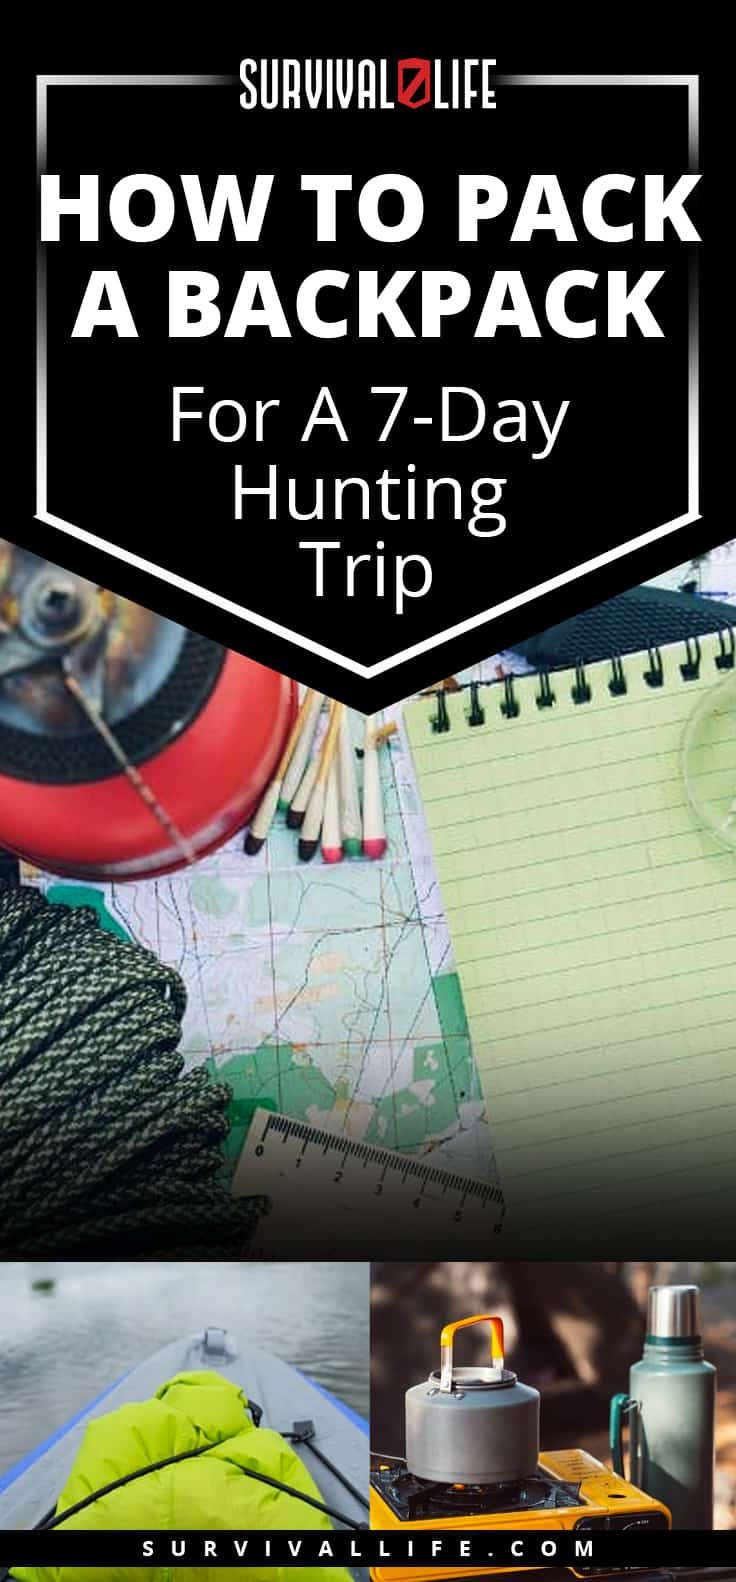 How To Pack A Backpack For A 7-Day Hunting Trip